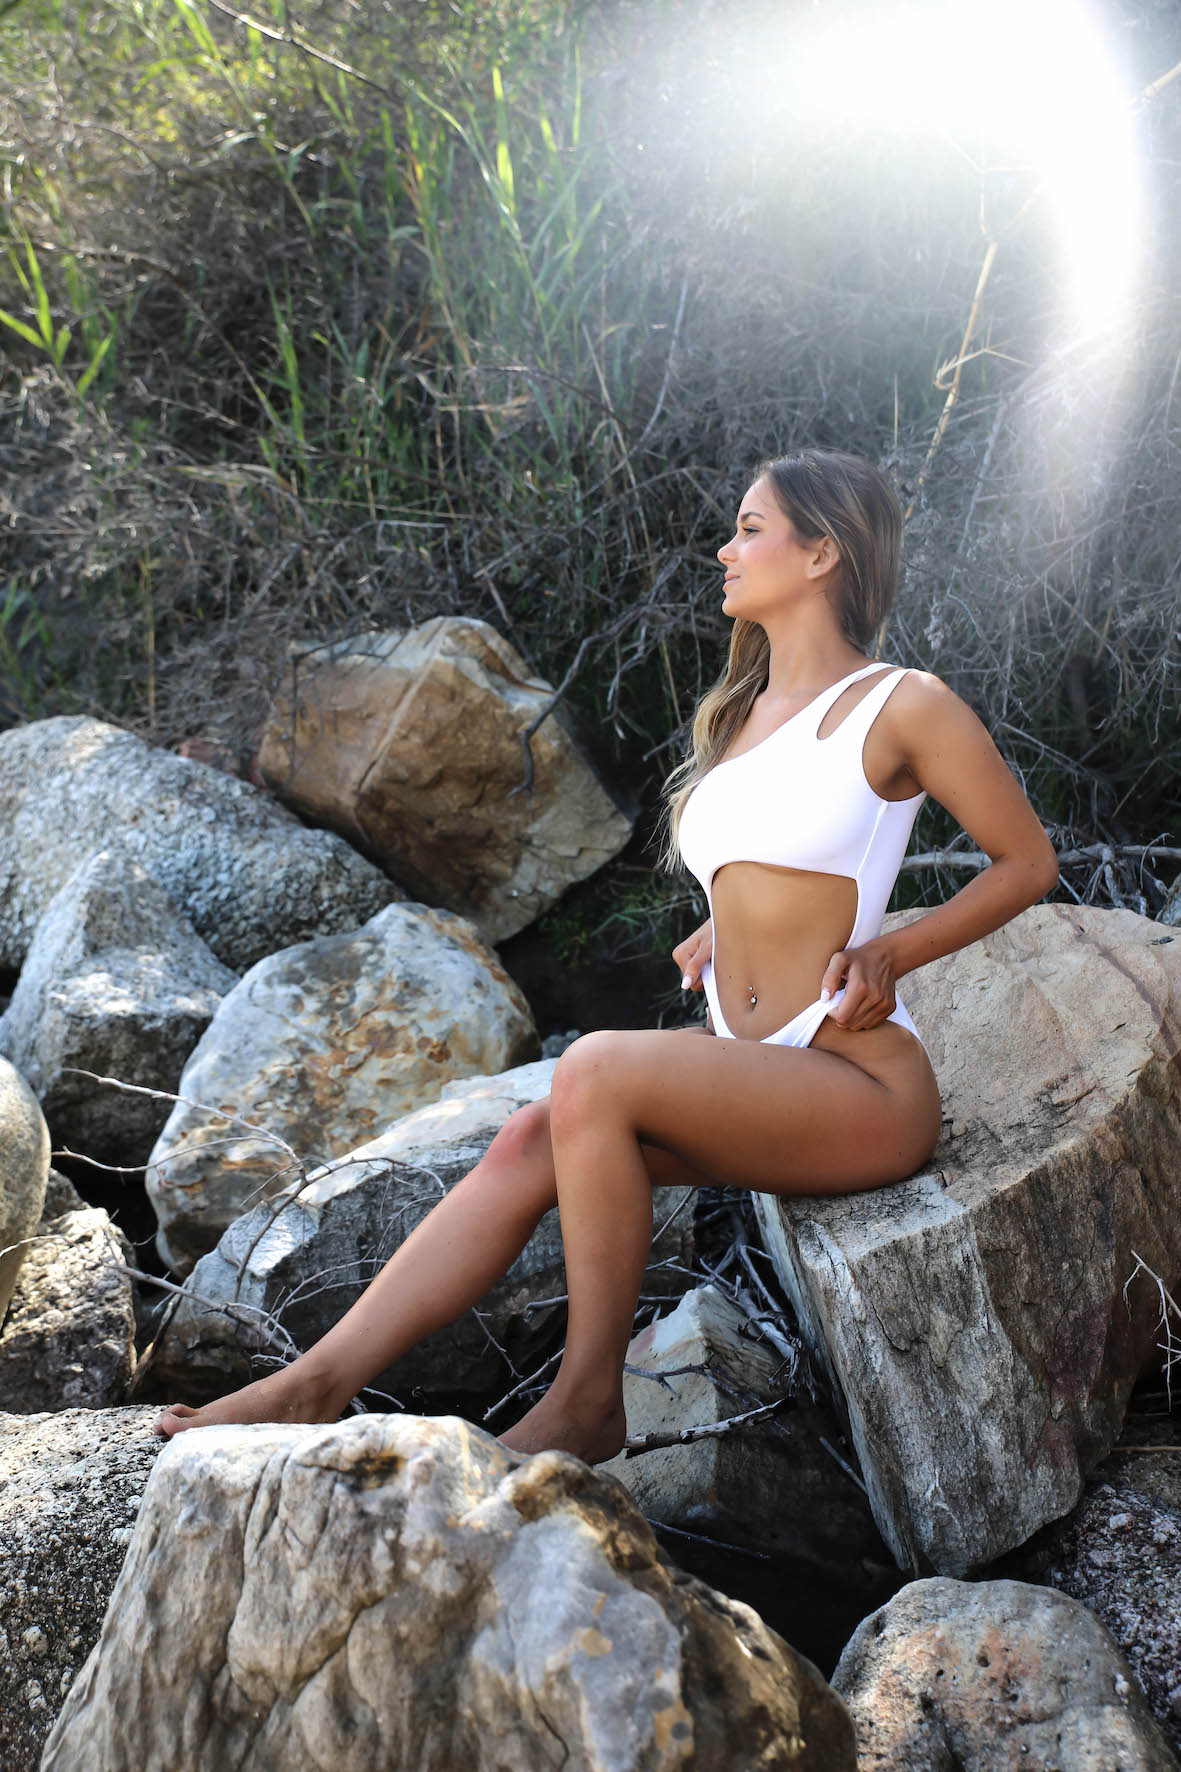 Our South African Babes feature with Jessica Van Jaarsveld